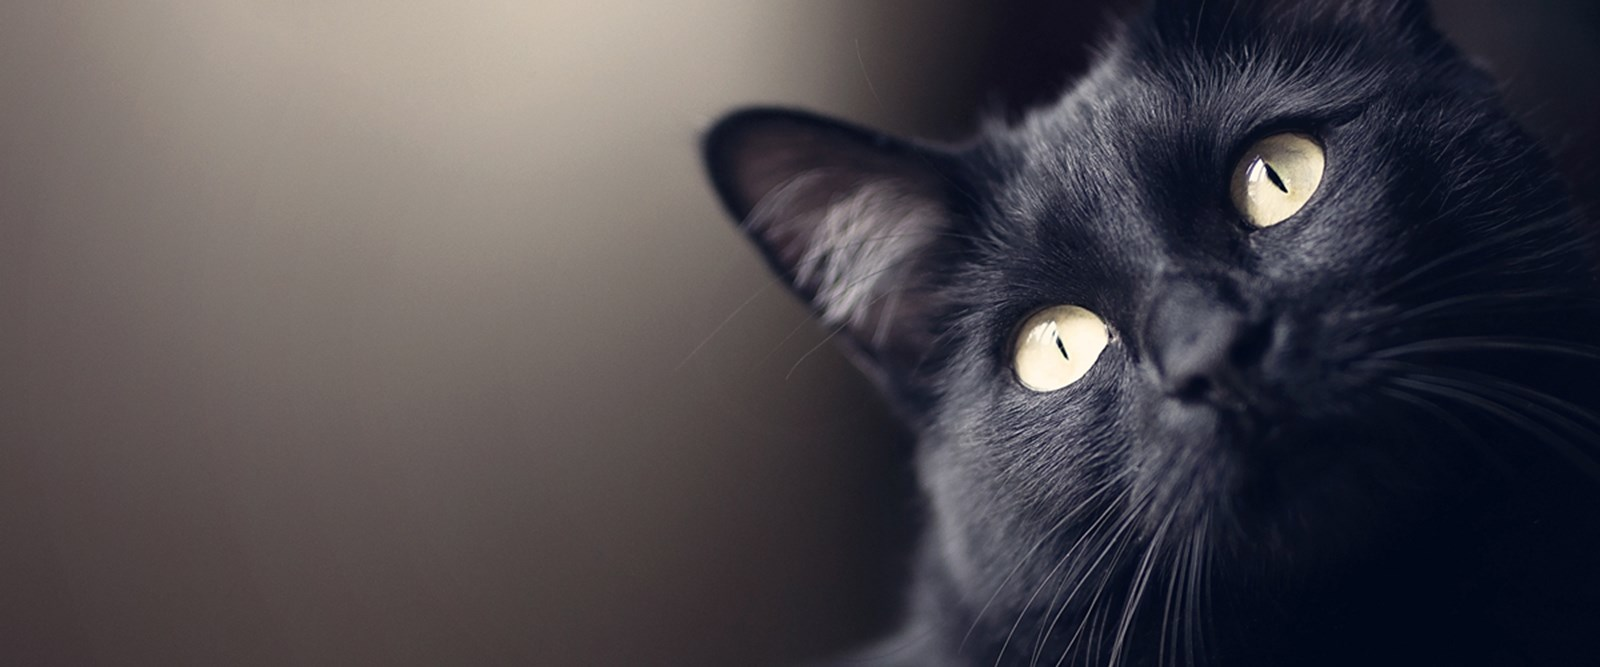 NBCD Homepage Banner Black Cat